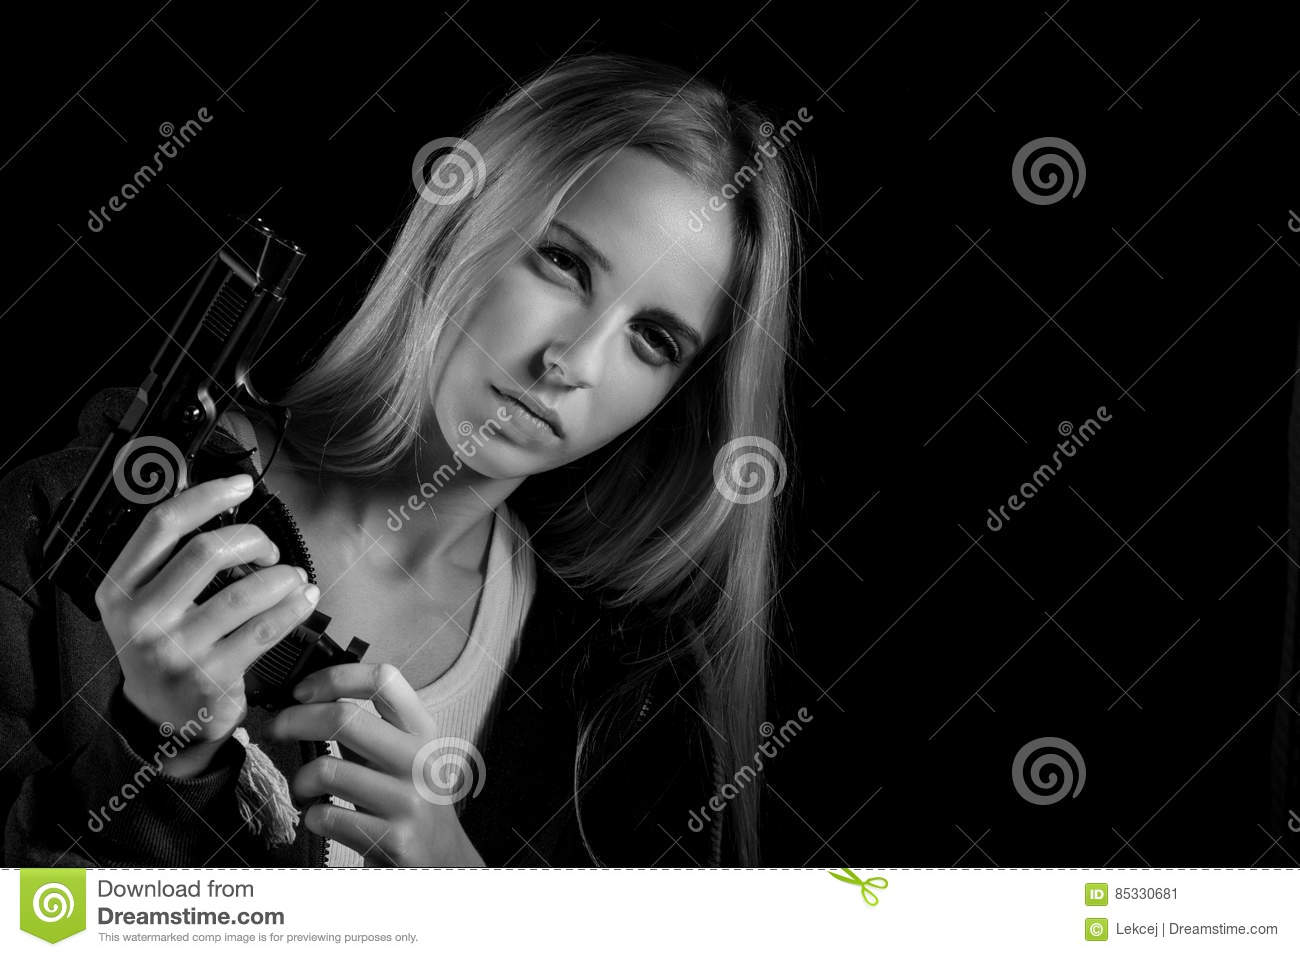 Girl gun stock images download 18956 royalty free photos